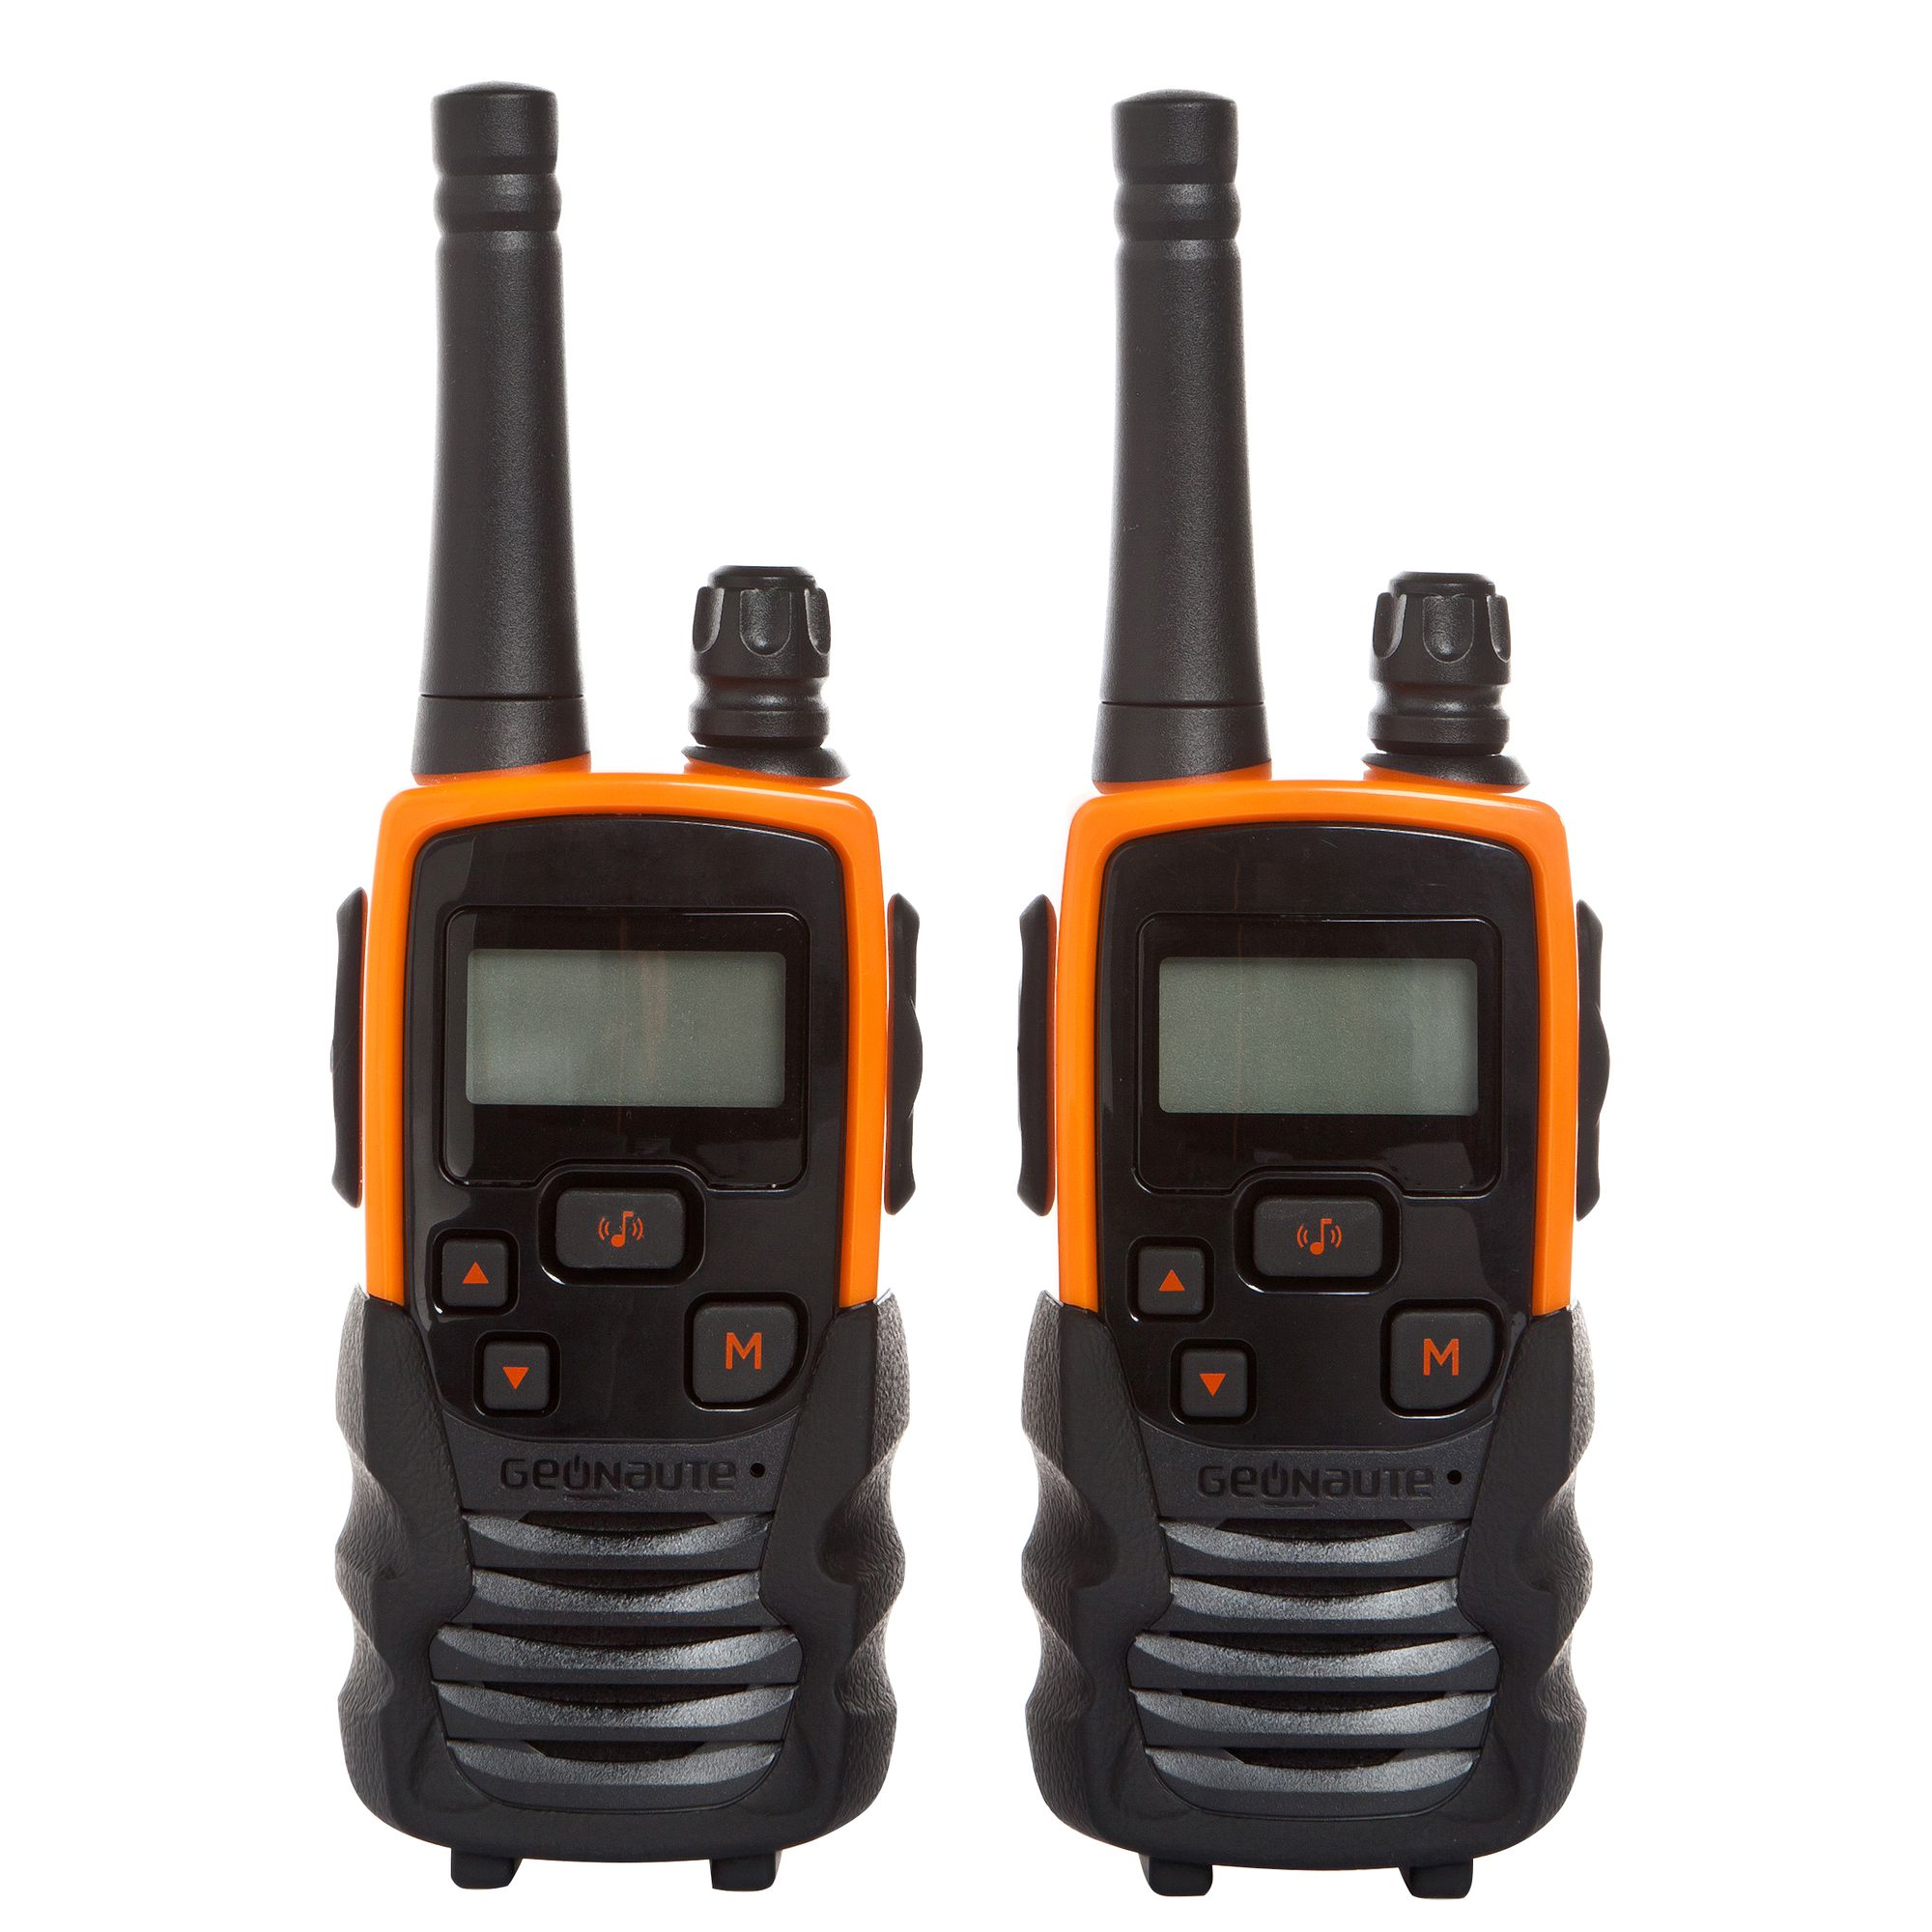 PAIRE DE TALKIE WALKIES ONCHANNEL 710 ORANGE